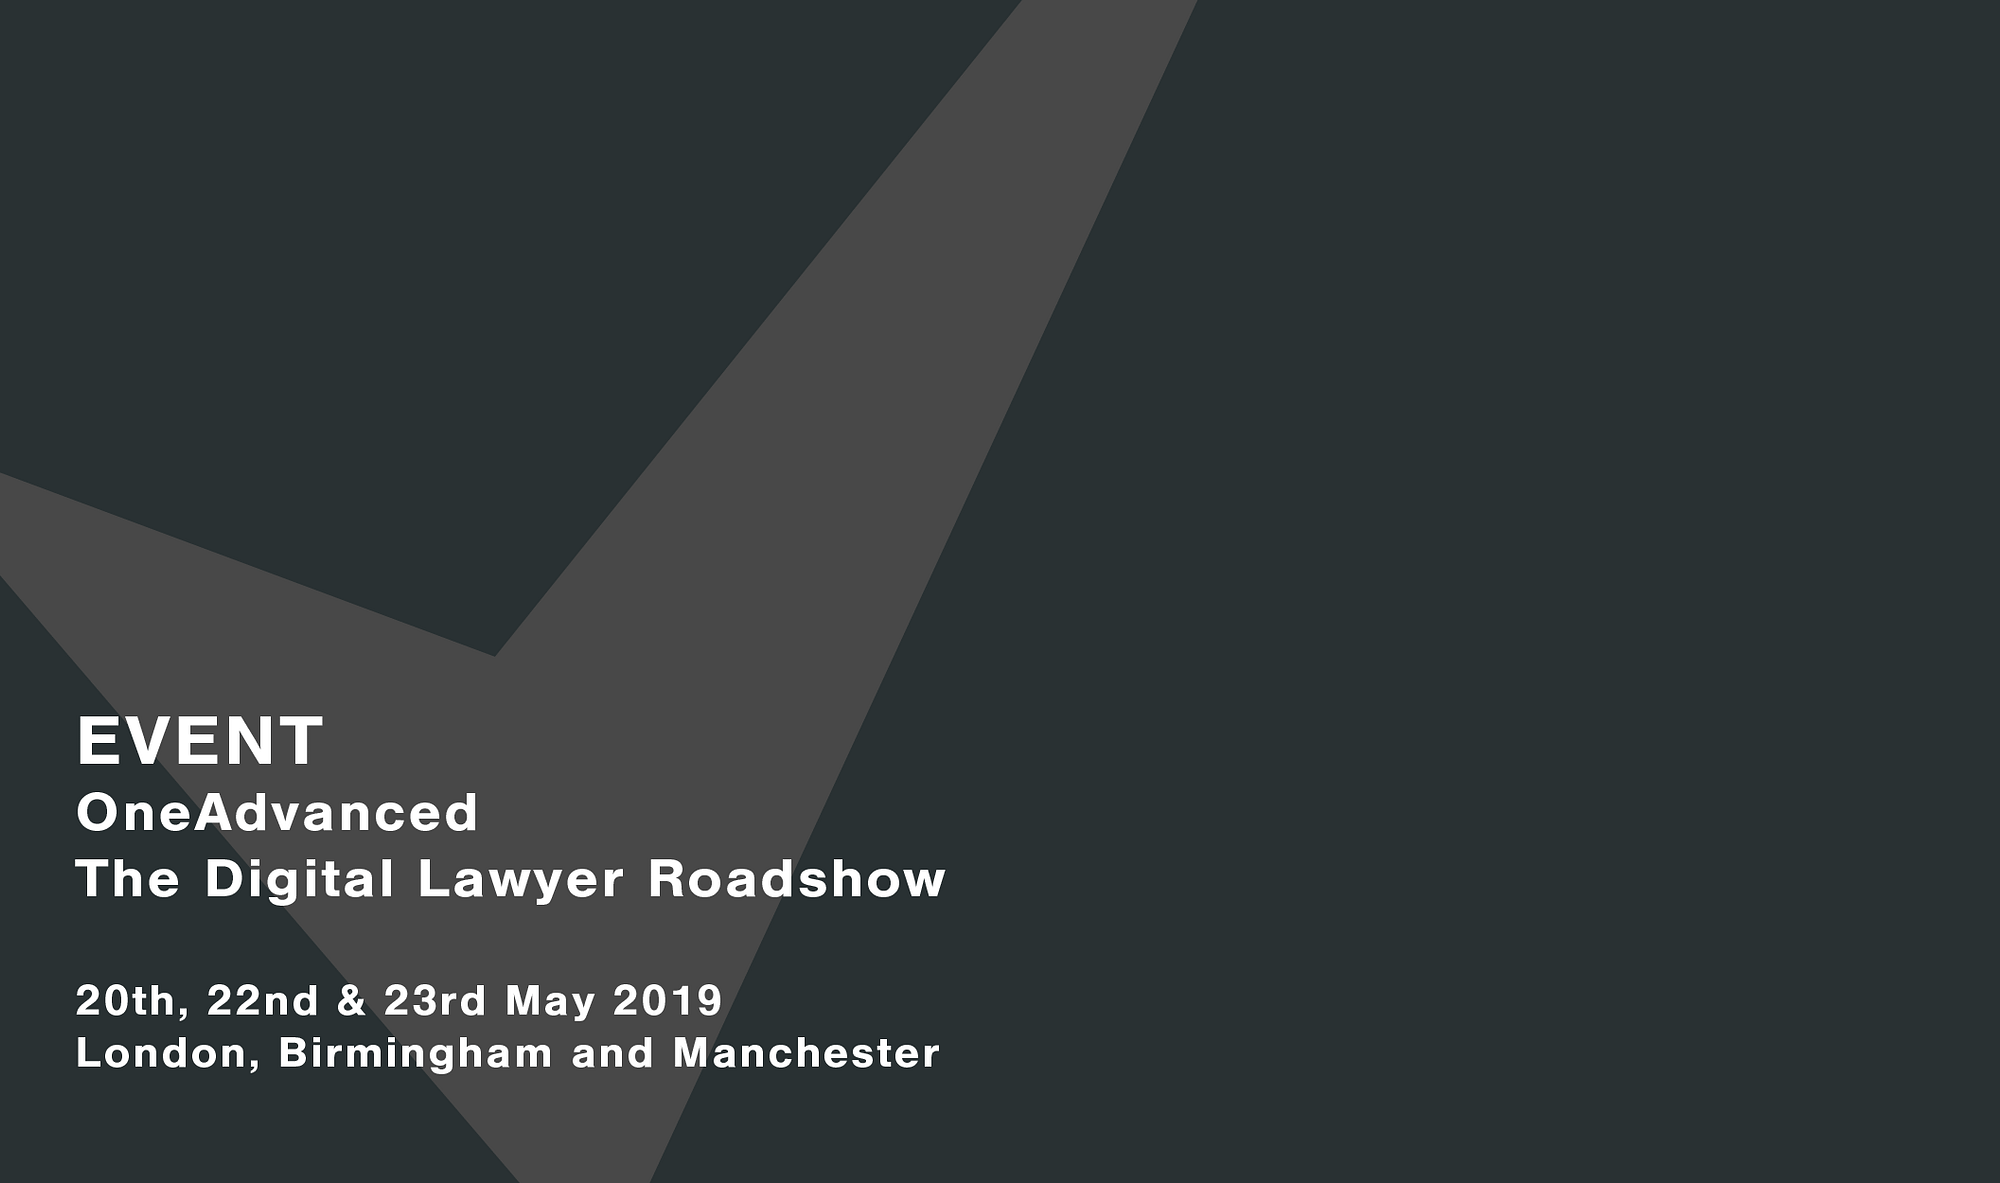 Event_OneAdvanced-Roadshow